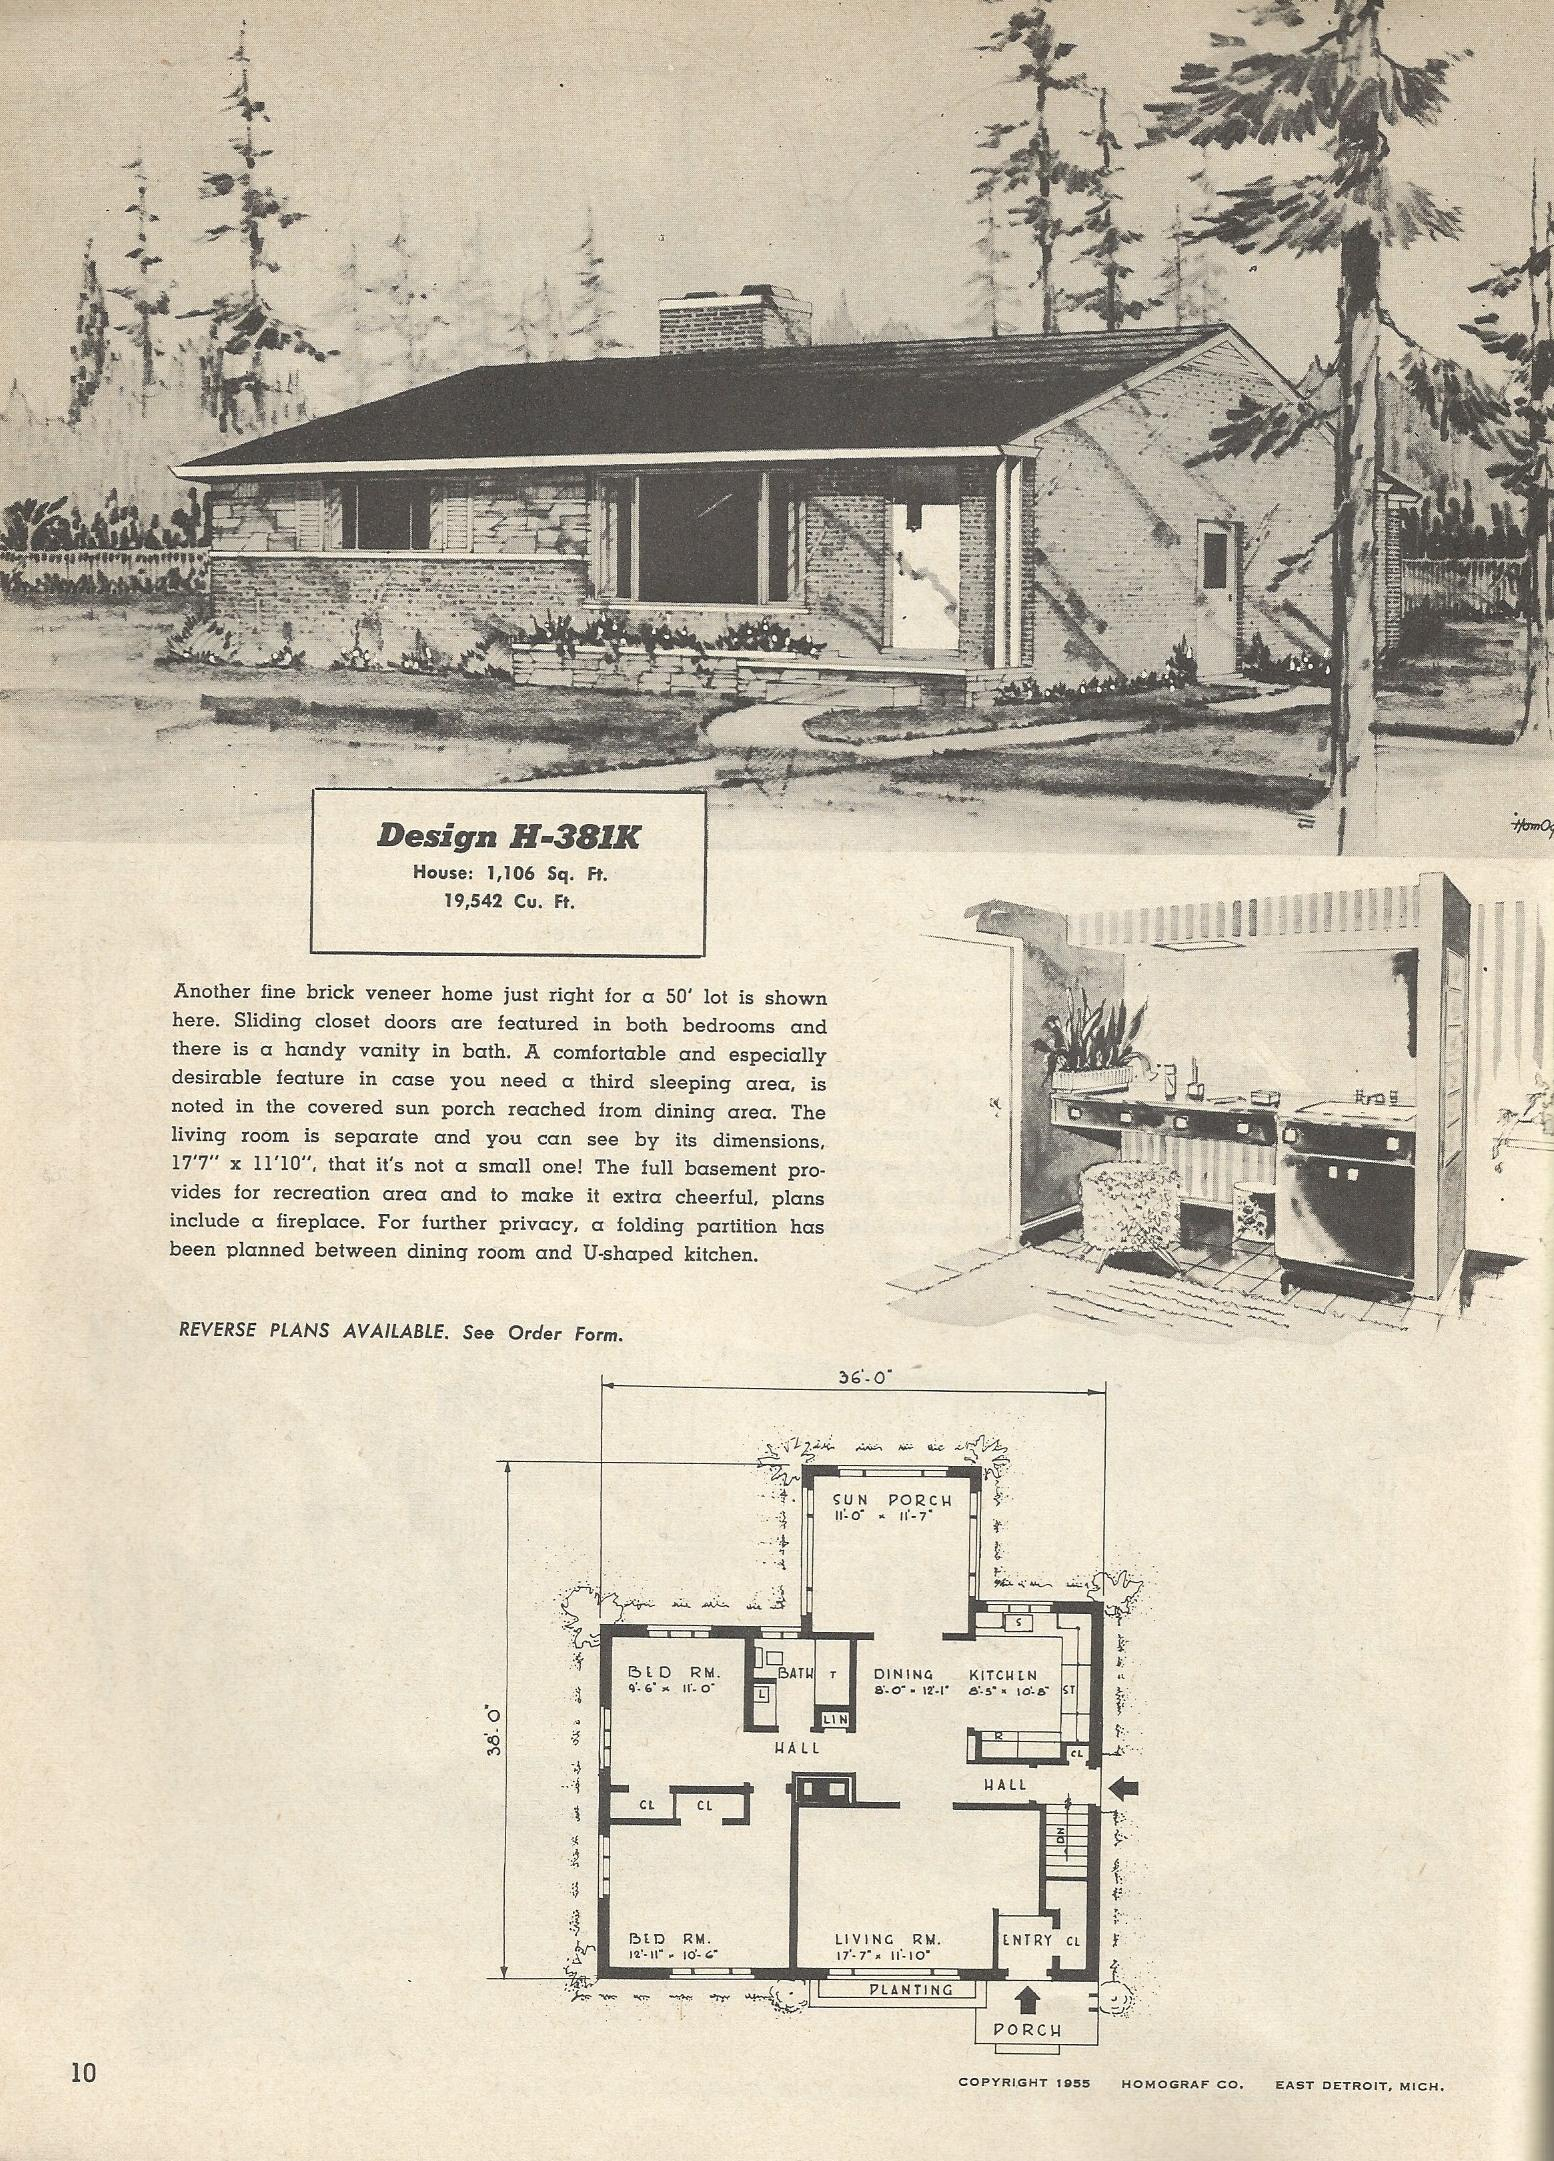 Vintage house plans 381k antique alter ego for 1950s modern house design